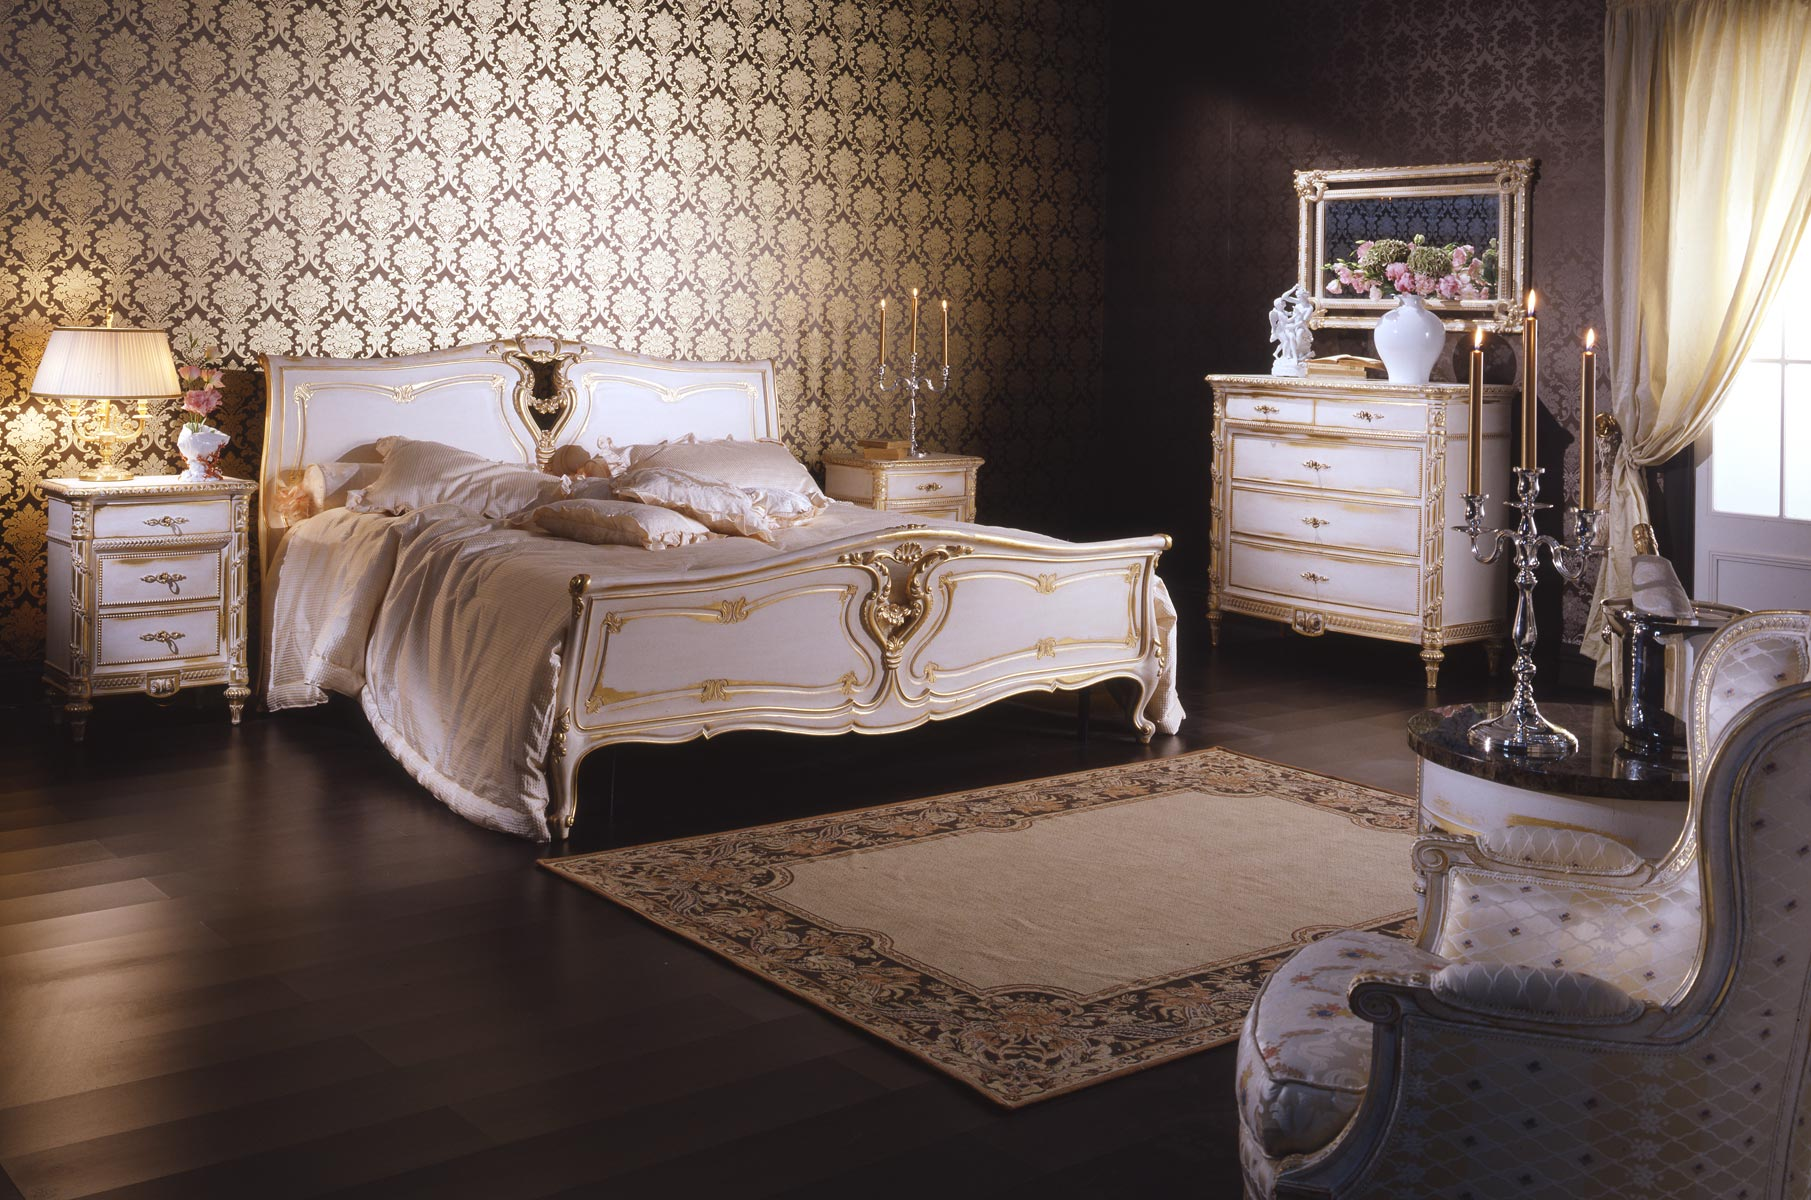 Classic Louis Xvi Bedroom Made Of Bed Chest Of Drawers